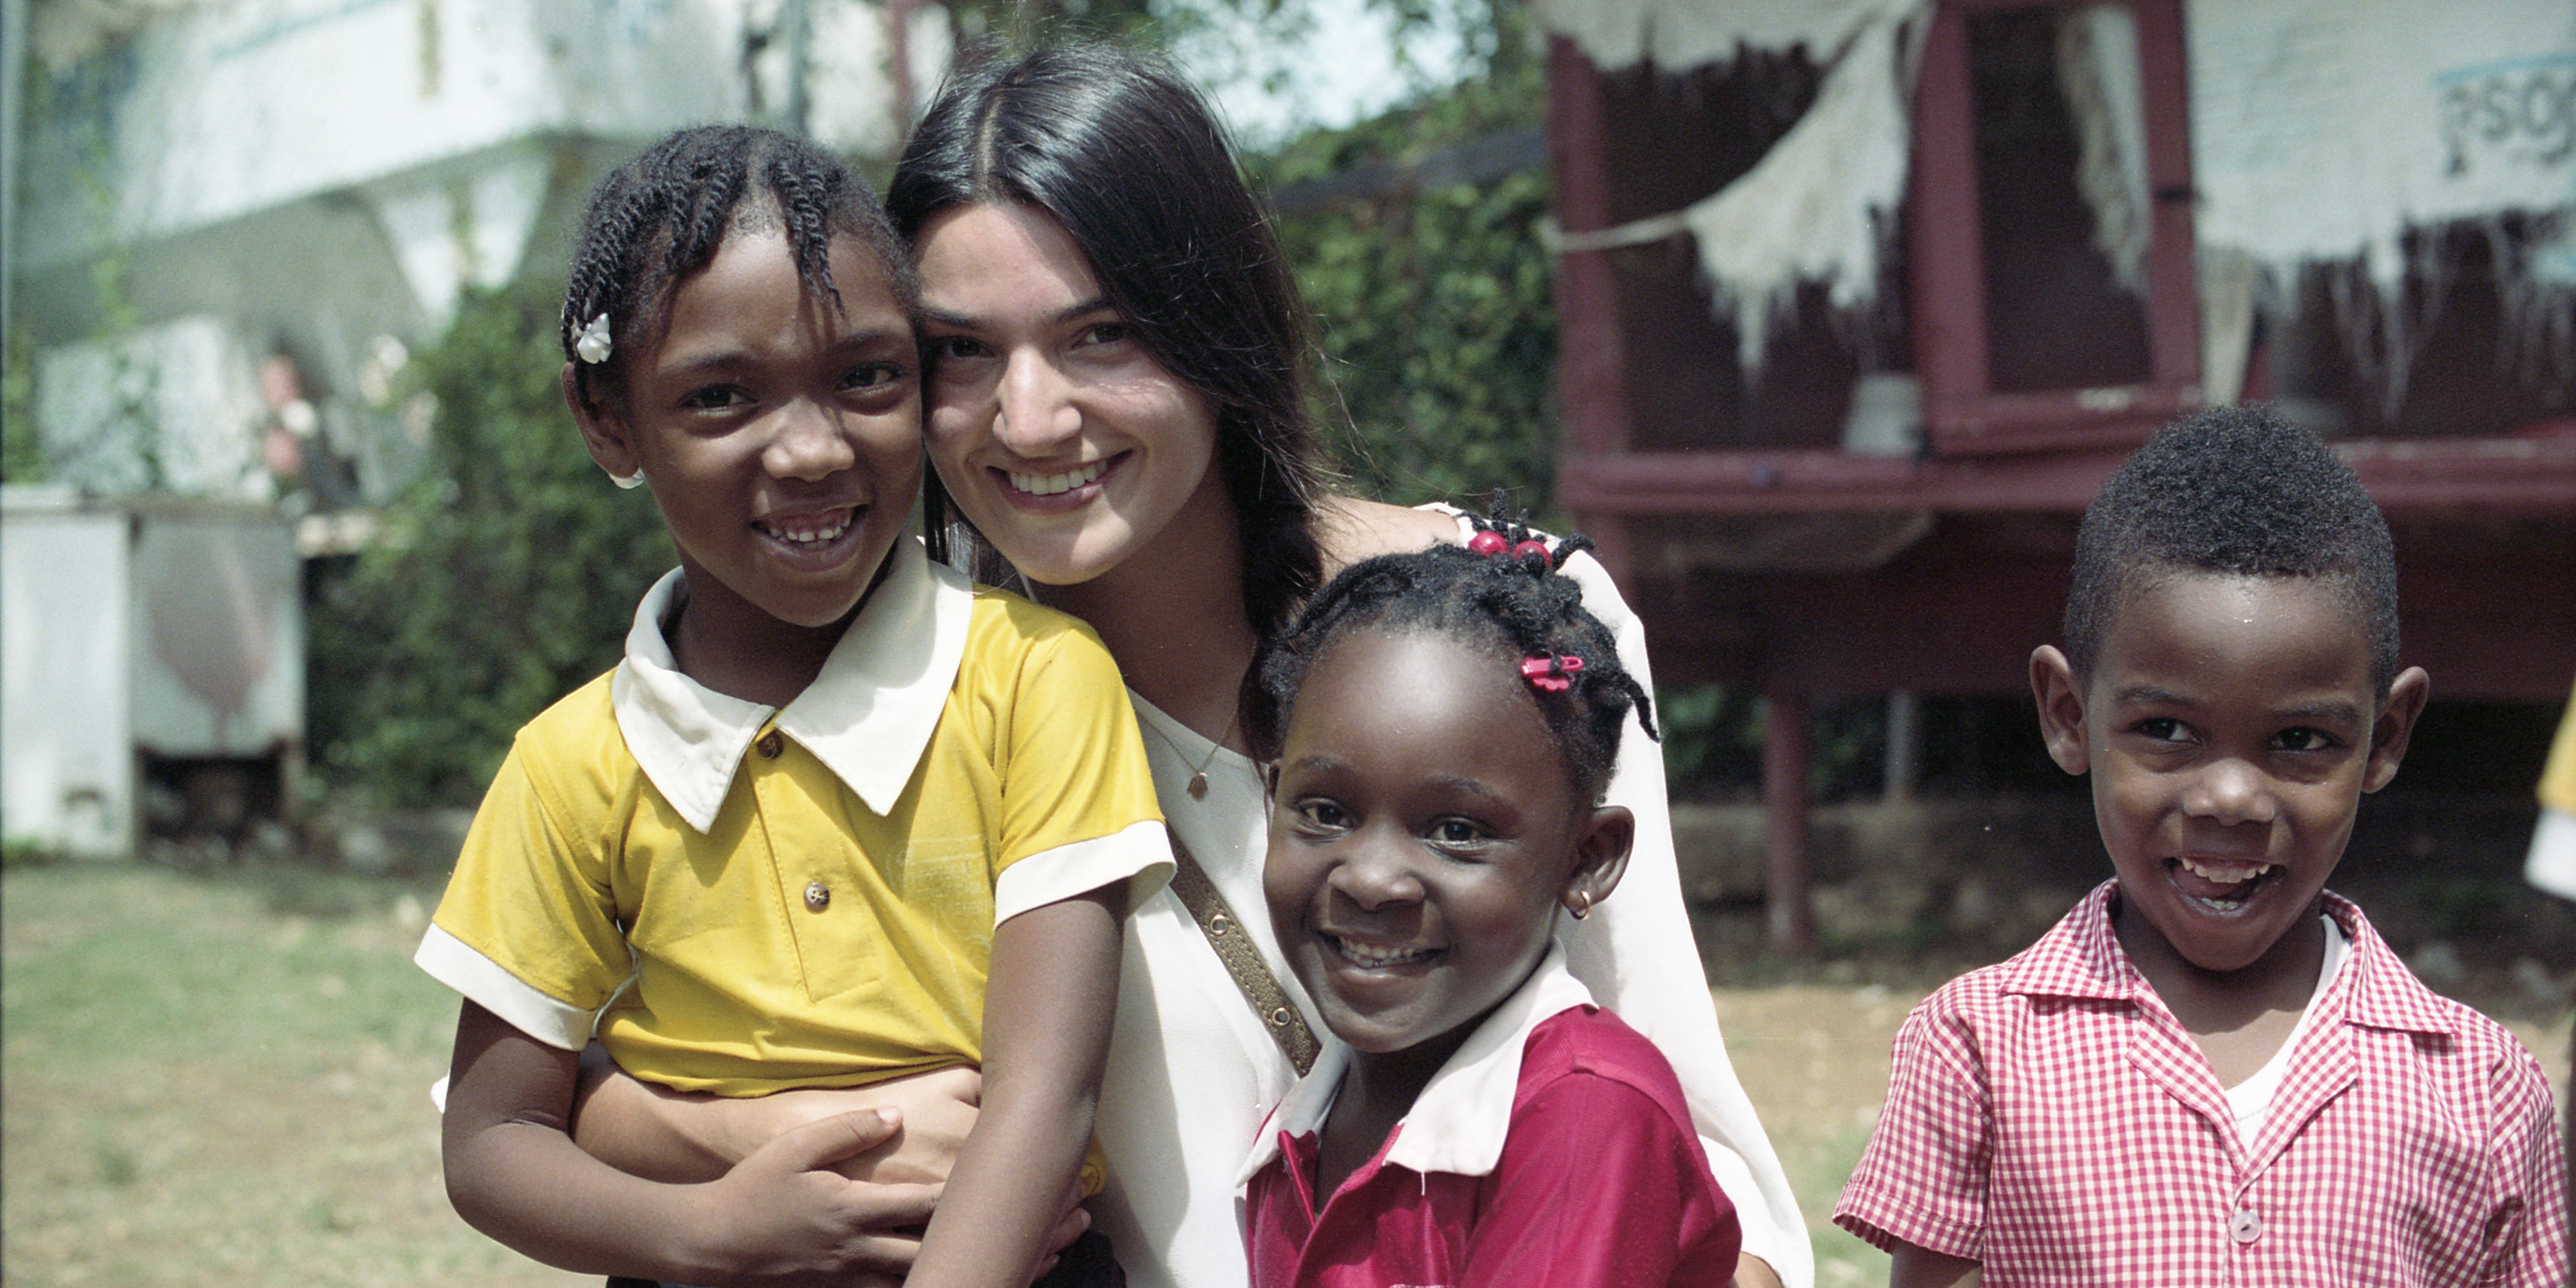 USD alumna Maria Silva '12 on an immersion trip to Jamaica.